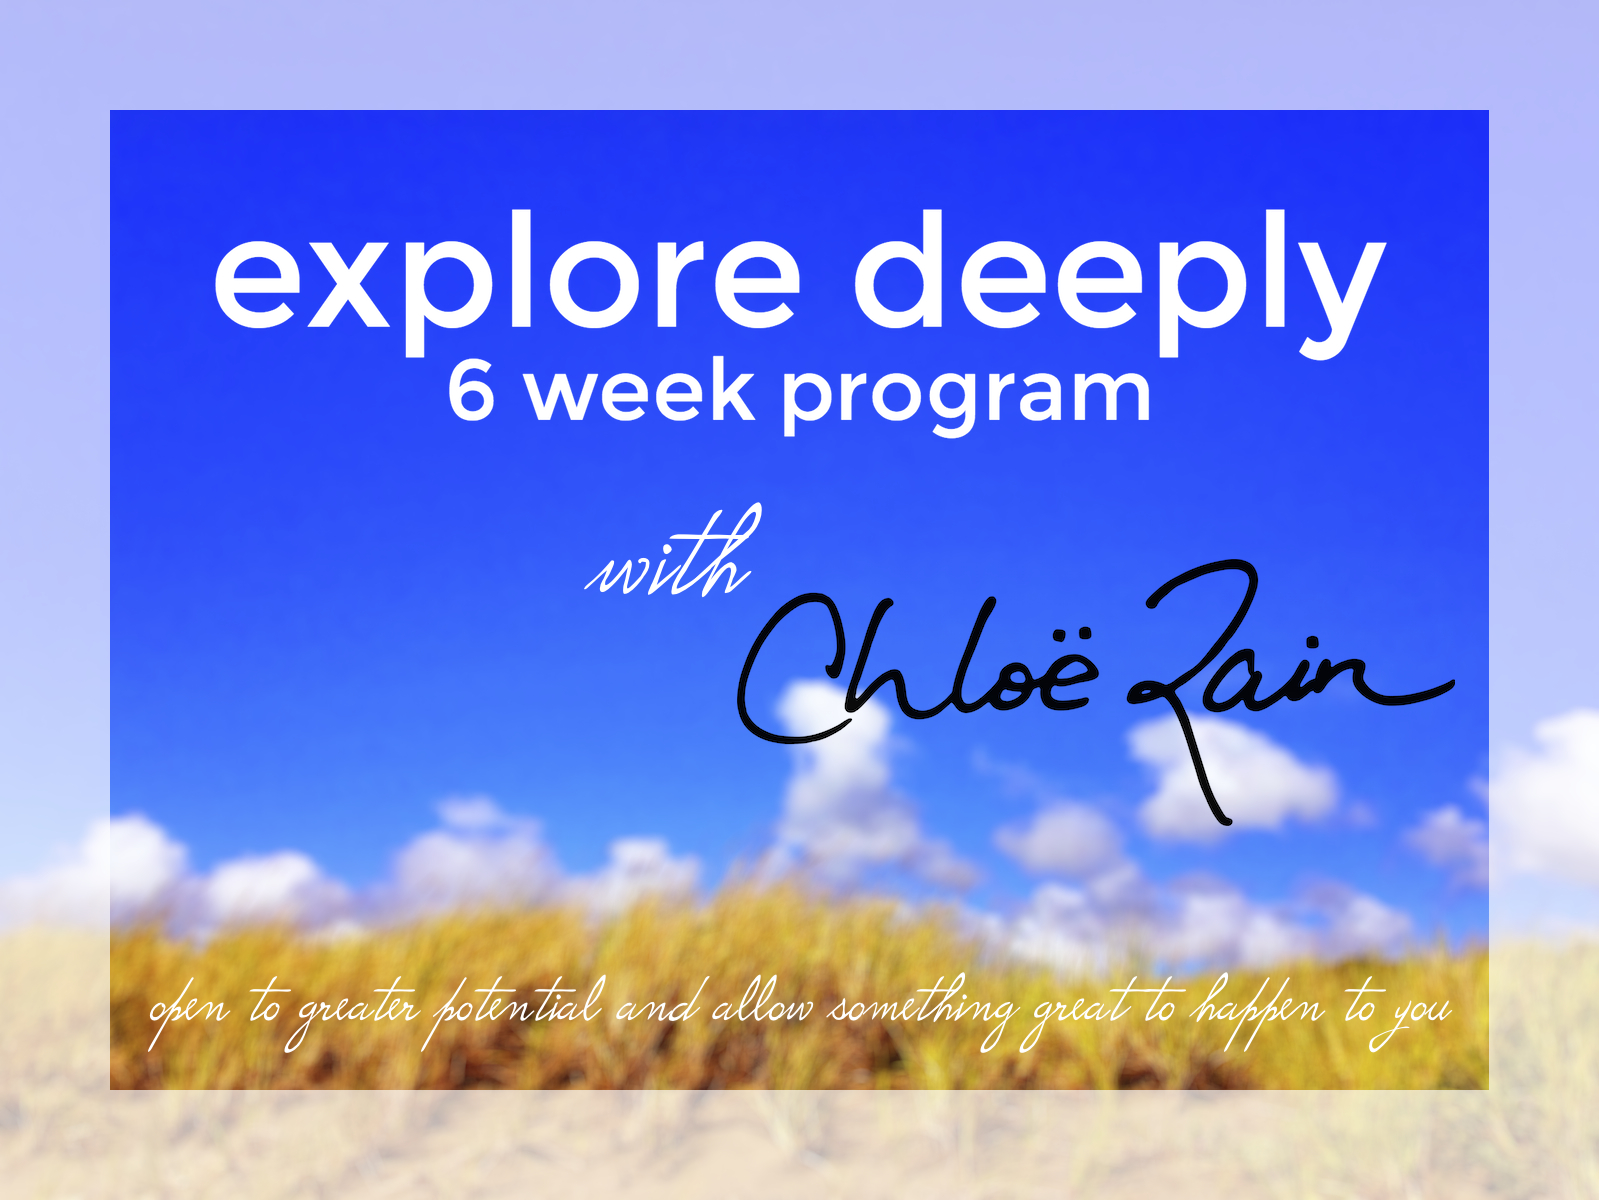 expect a miracle explore deeply program 6 weeks to happiness